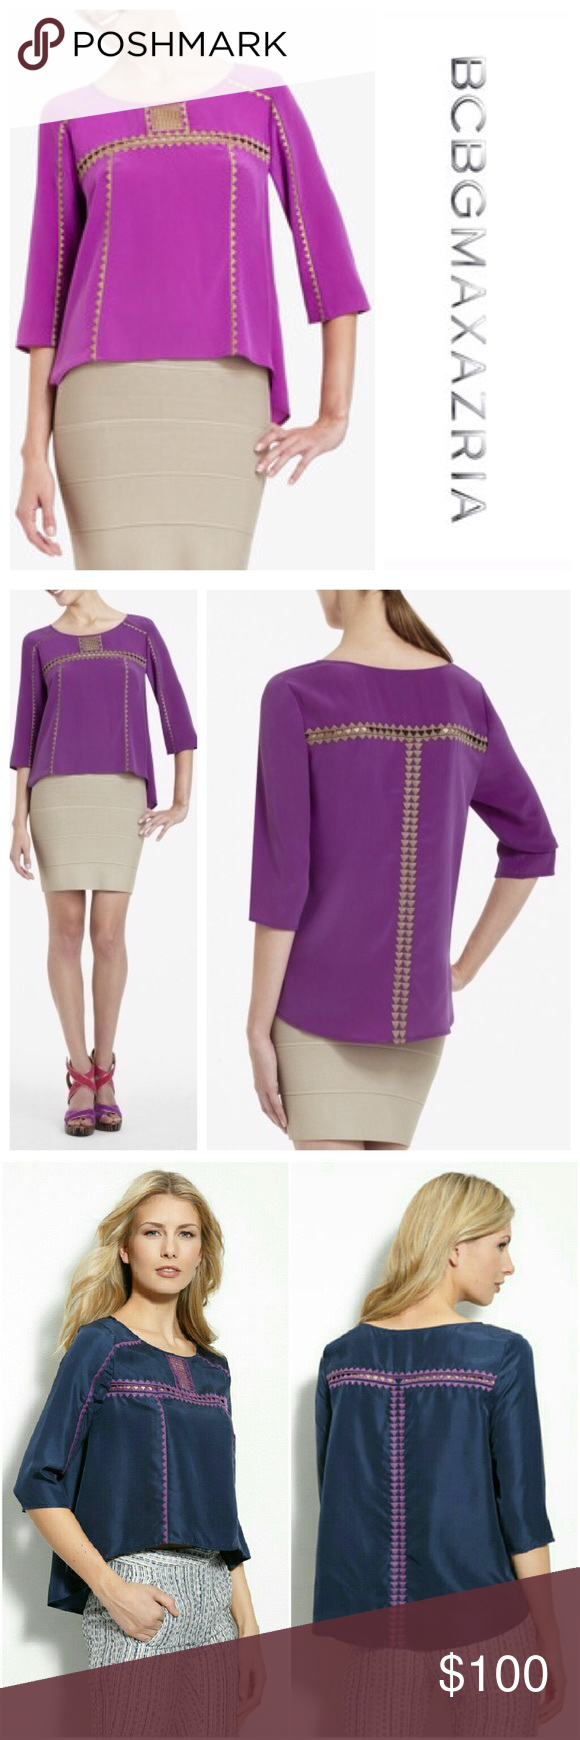 Mara Embroidered Silk Blouse BCBGMaxAzaria Silk Embroidered Tunic Top. Size Small. New. Imported. 100% Silk. Round neck. Three-quarter length sleeves. Allover contrast Embroidered detail. Hem is longer at sides. 20.75' from shoulder to hem. 🍇Please send reasonable offers through the offer button !🍇 BCBGMaxAzria Tops Tunics